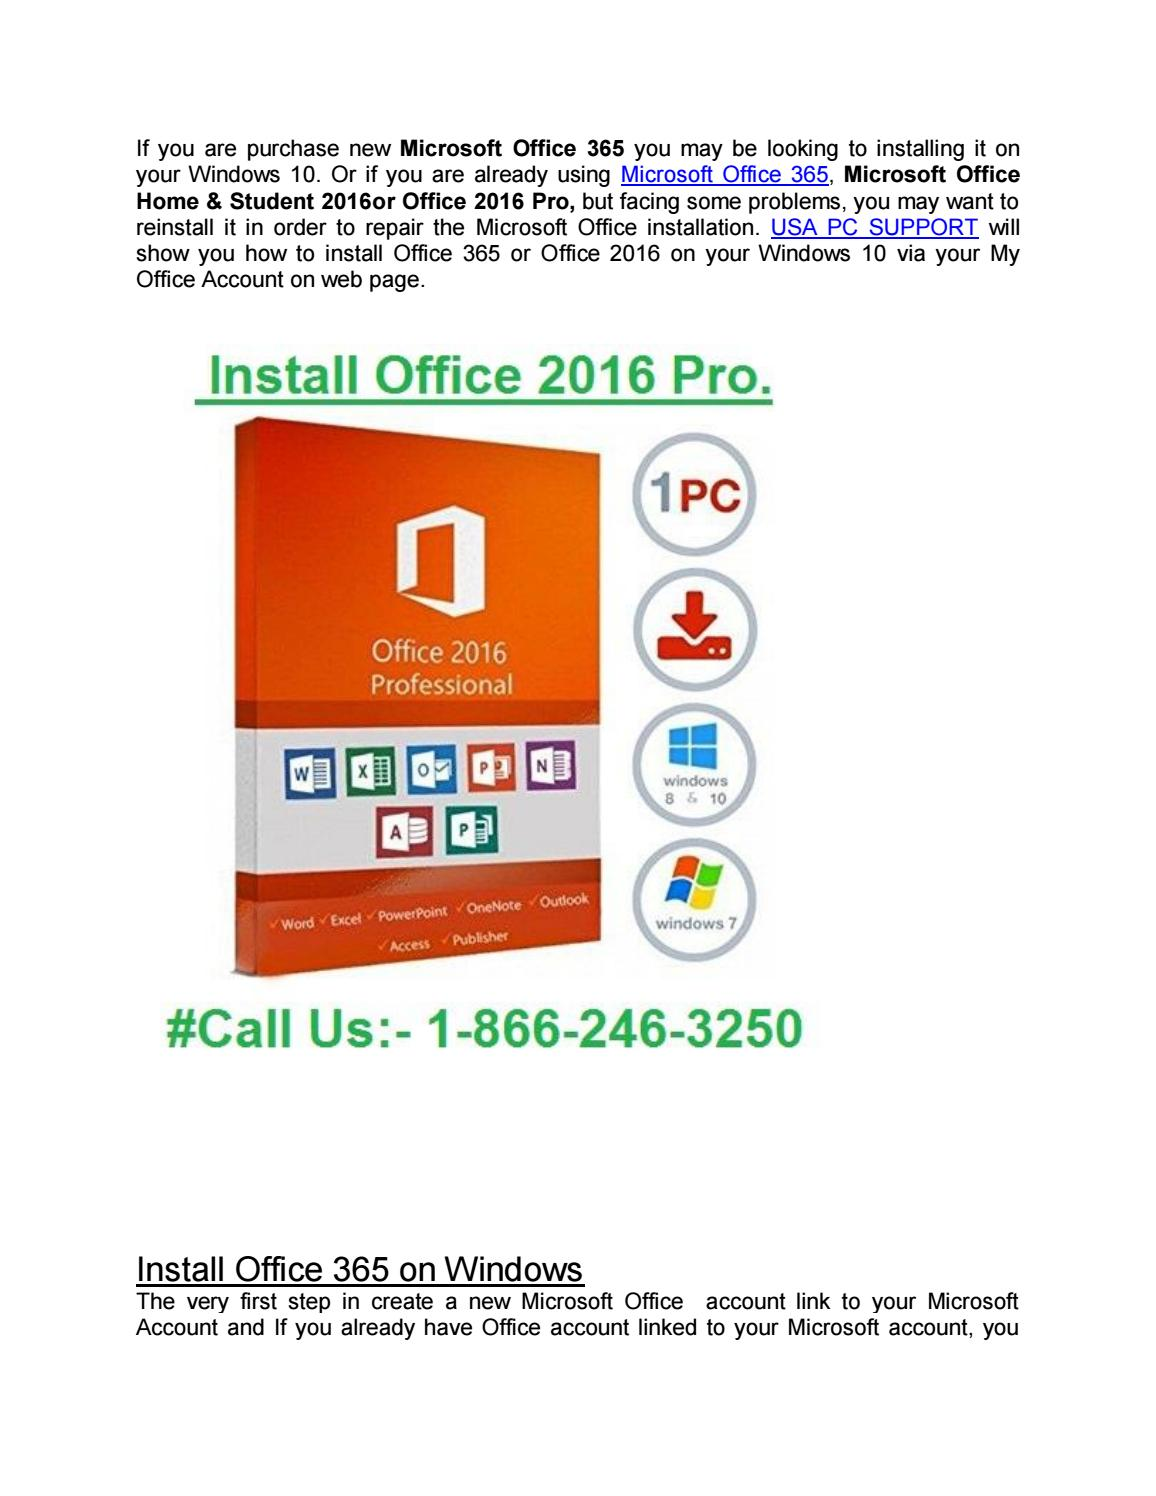 How to install office 2016 on windows 10 by Microsoft_Office - issuu